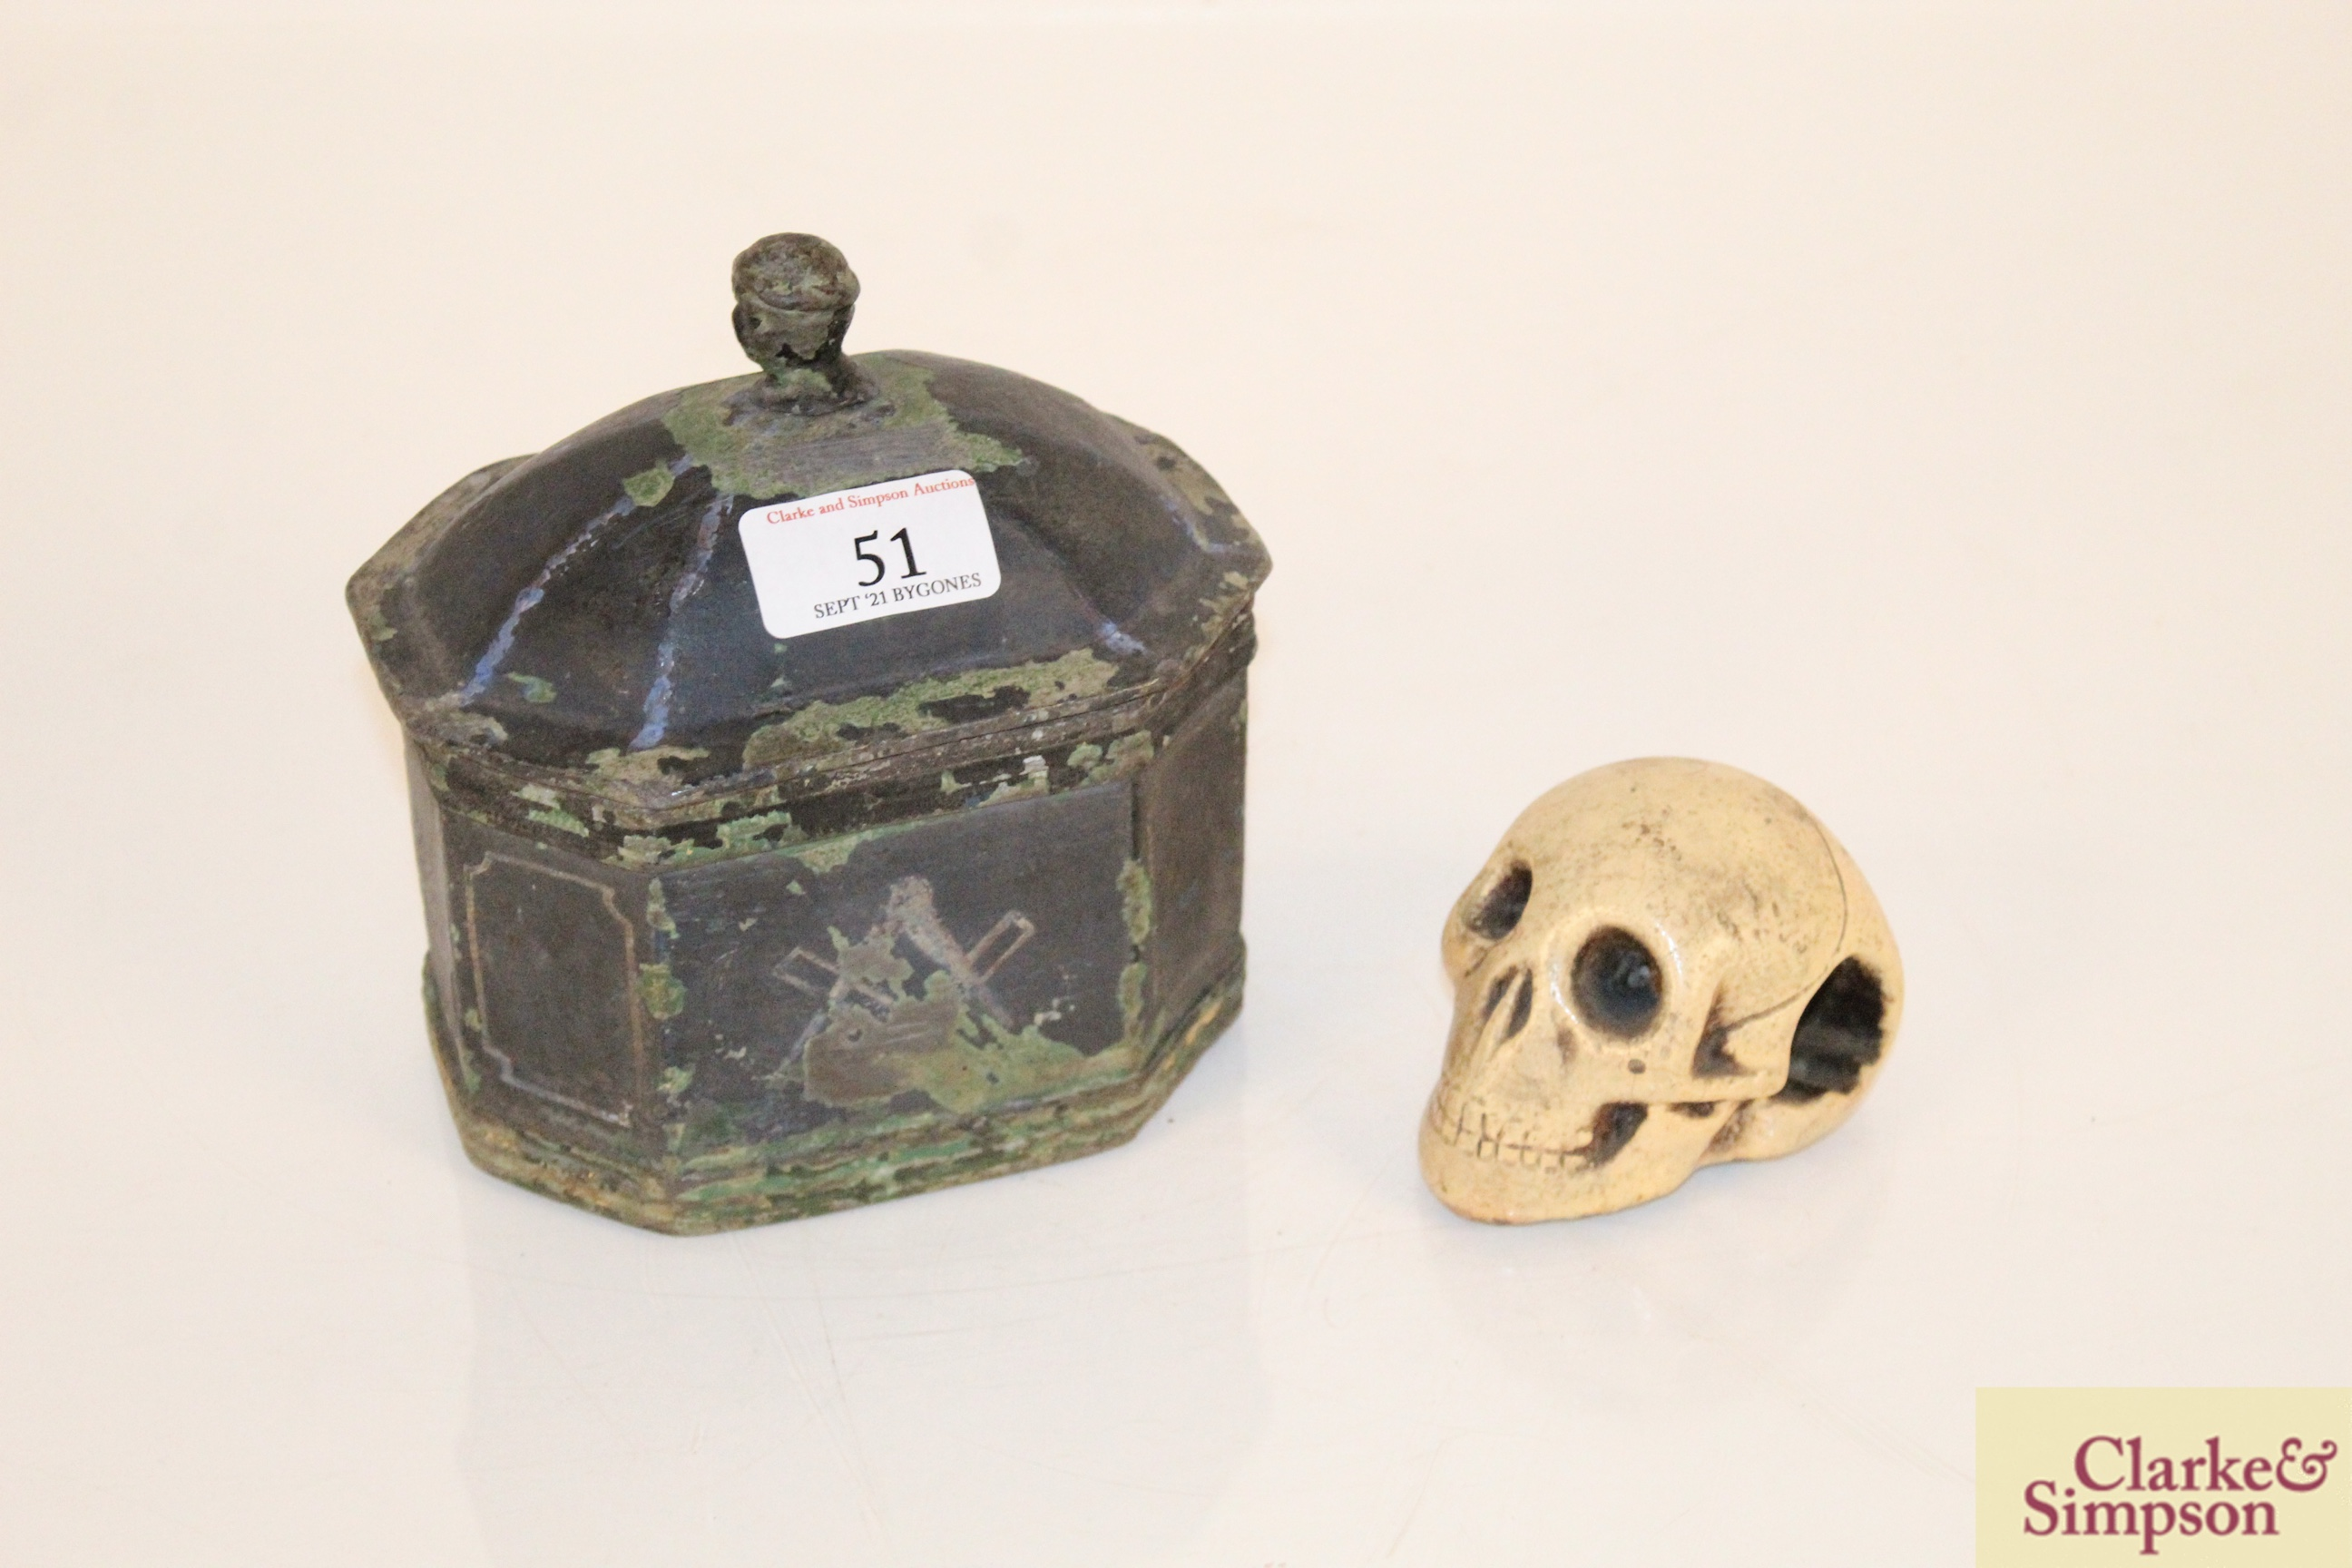 A lead casket containing a faux ivory skull